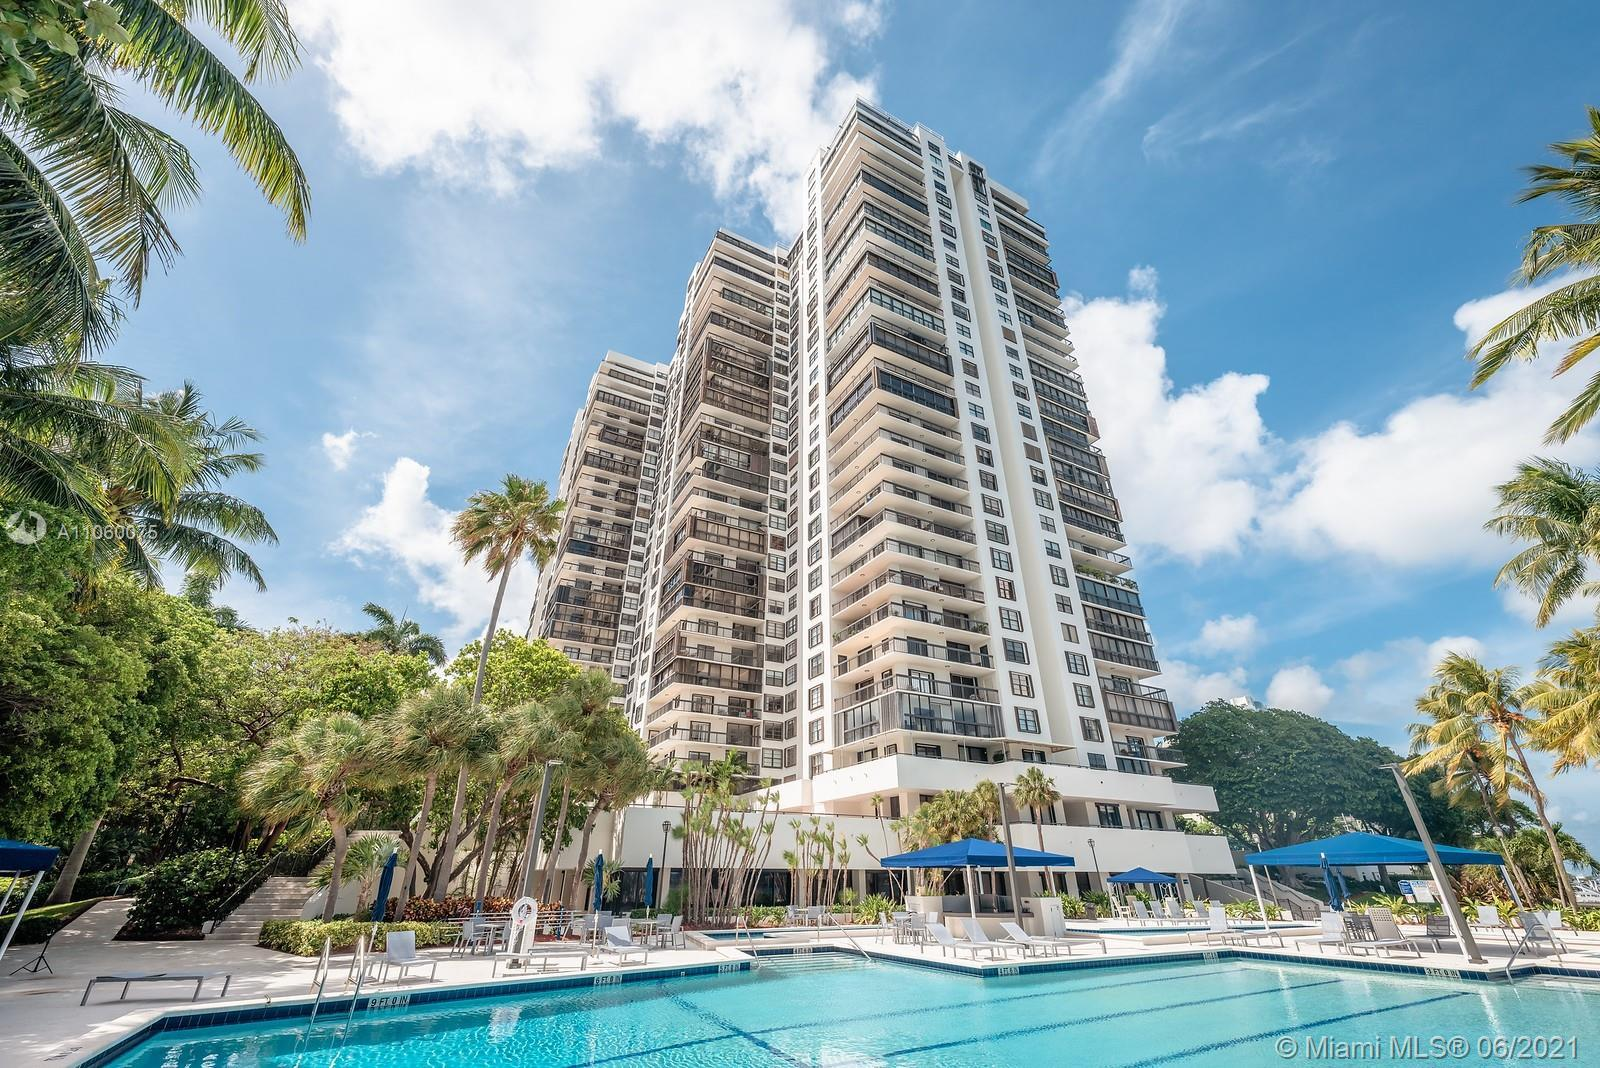 Fantastic opportunity in the Best waterfront location in desirable Brickell Avenue. Resort Style Bui